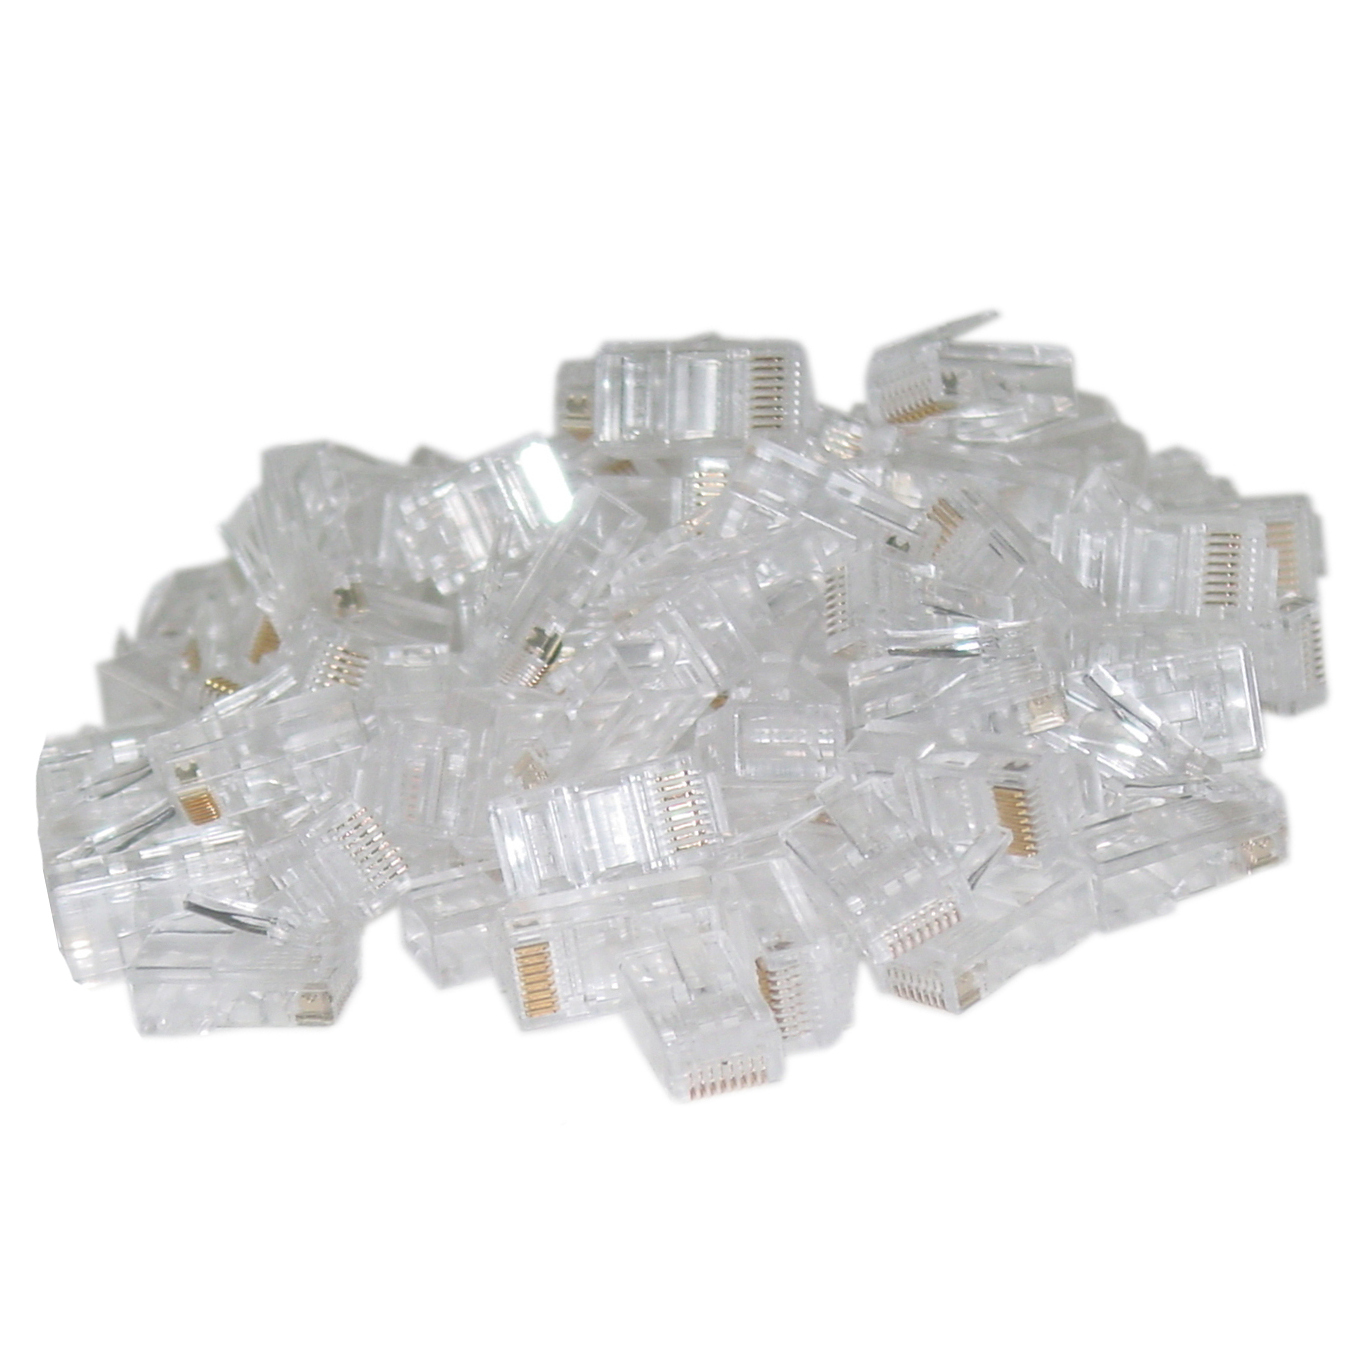 108702 - CAT6 RJ45 Crimp-On Connector Plugs for Stranded Cable - Bag of 50